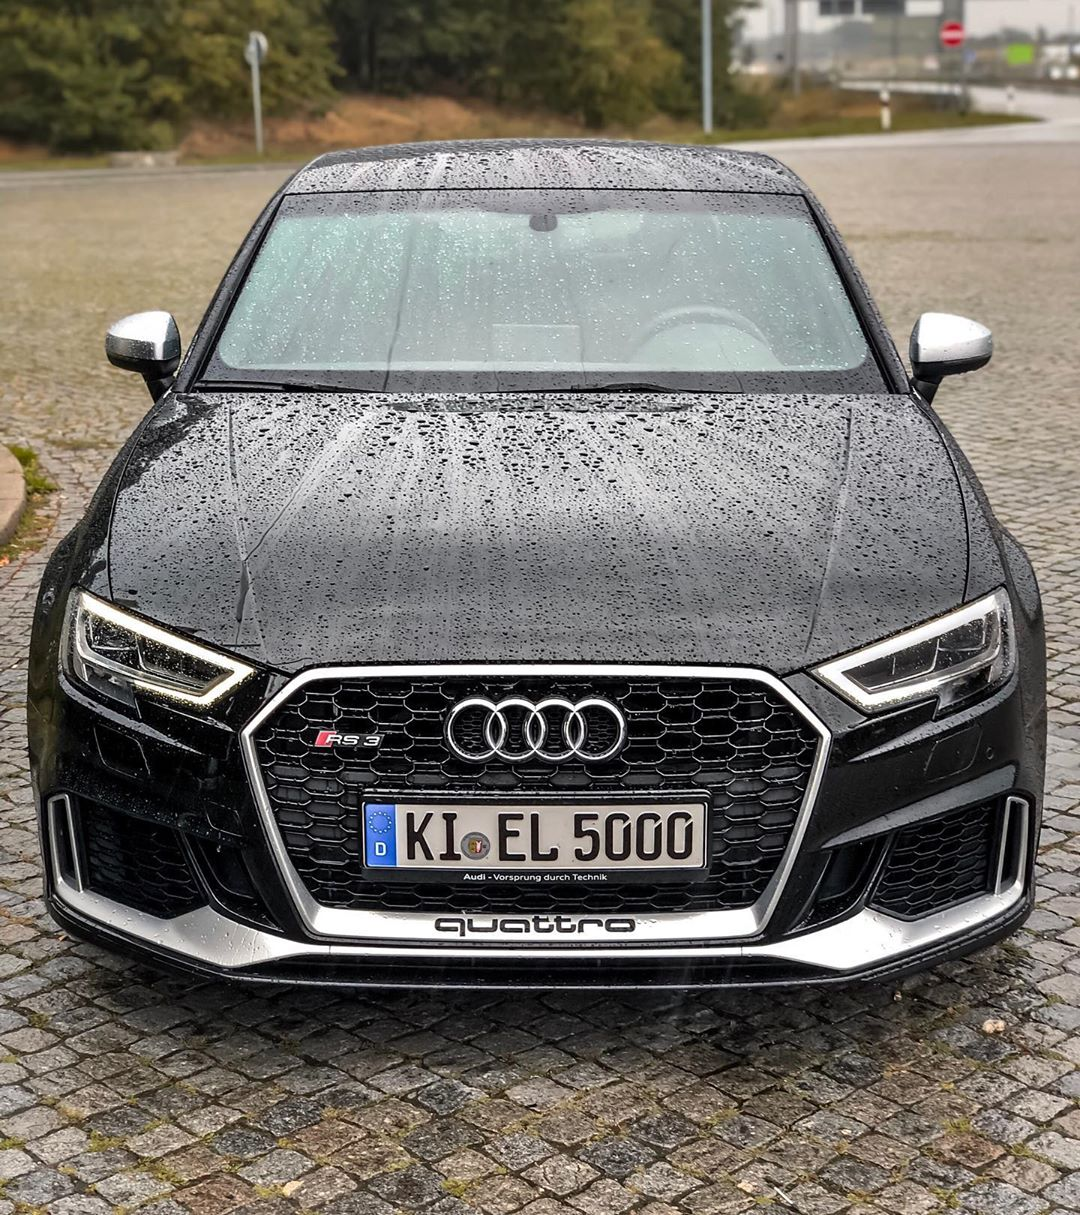 RS3 looks & drives amazing at any kind of weather😍🌧☀️#Audi rs#audi #audisport #rs3 #rs3limousine #rs3sedan #rs38v #pantherschwarz #pantherblack #blackbeauty #blackpanther #automannsgarage #automanntv